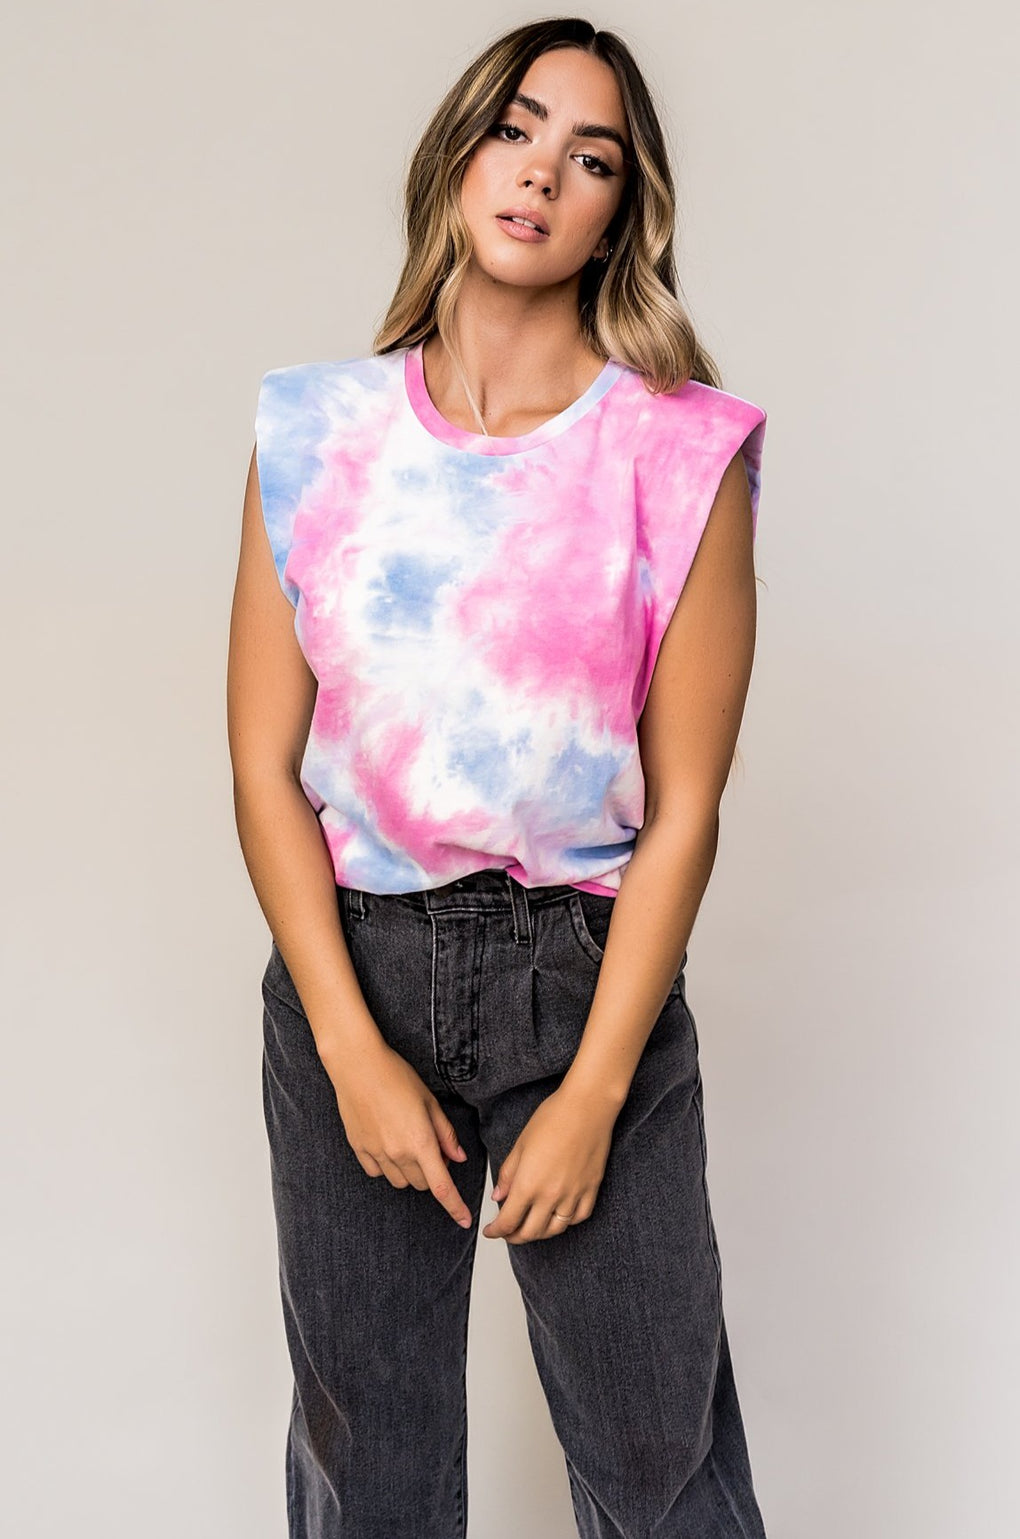 Bad Babe Muscle Tee in Cotton Candy Tie Dye